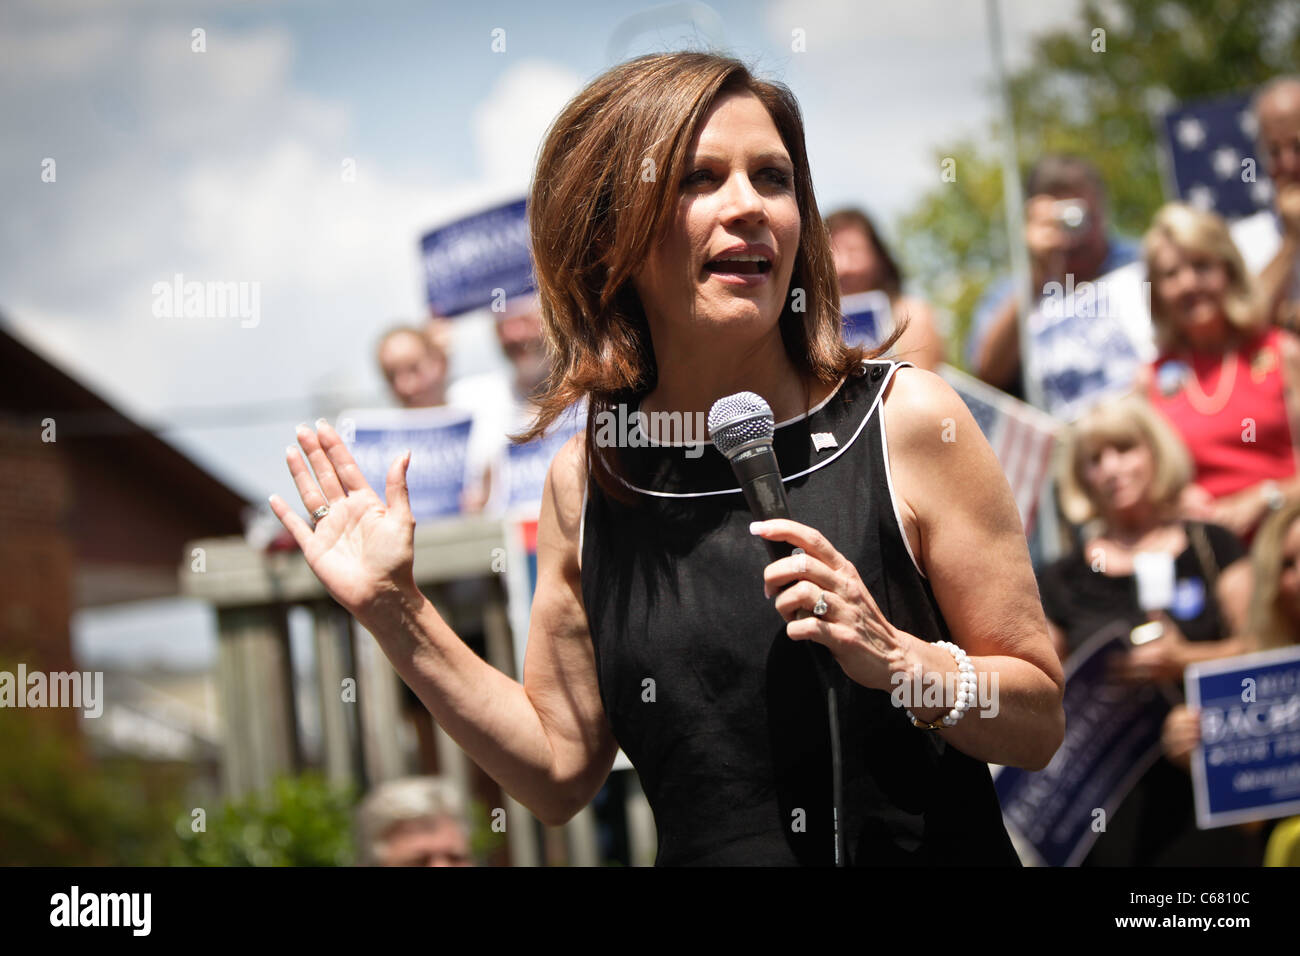 US Republican Presidential candidate Michelle Bachmann campaigns on August 18, 2011 in Columbia, South Carolina. - Stock Image